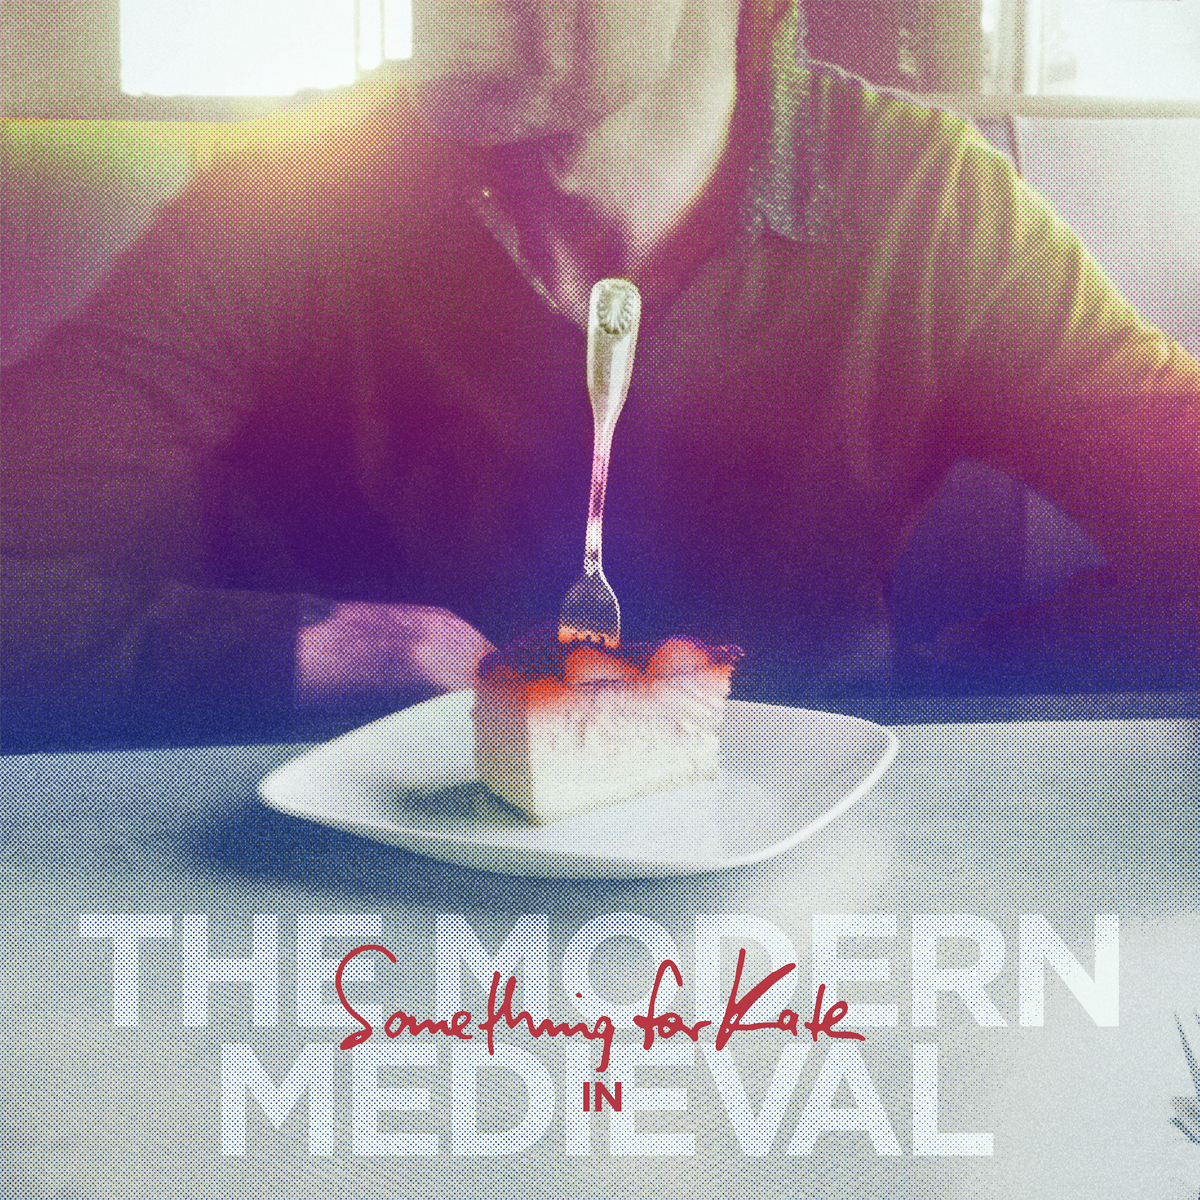 Something For Kate new album The Modern Medieval Paul Dempsey